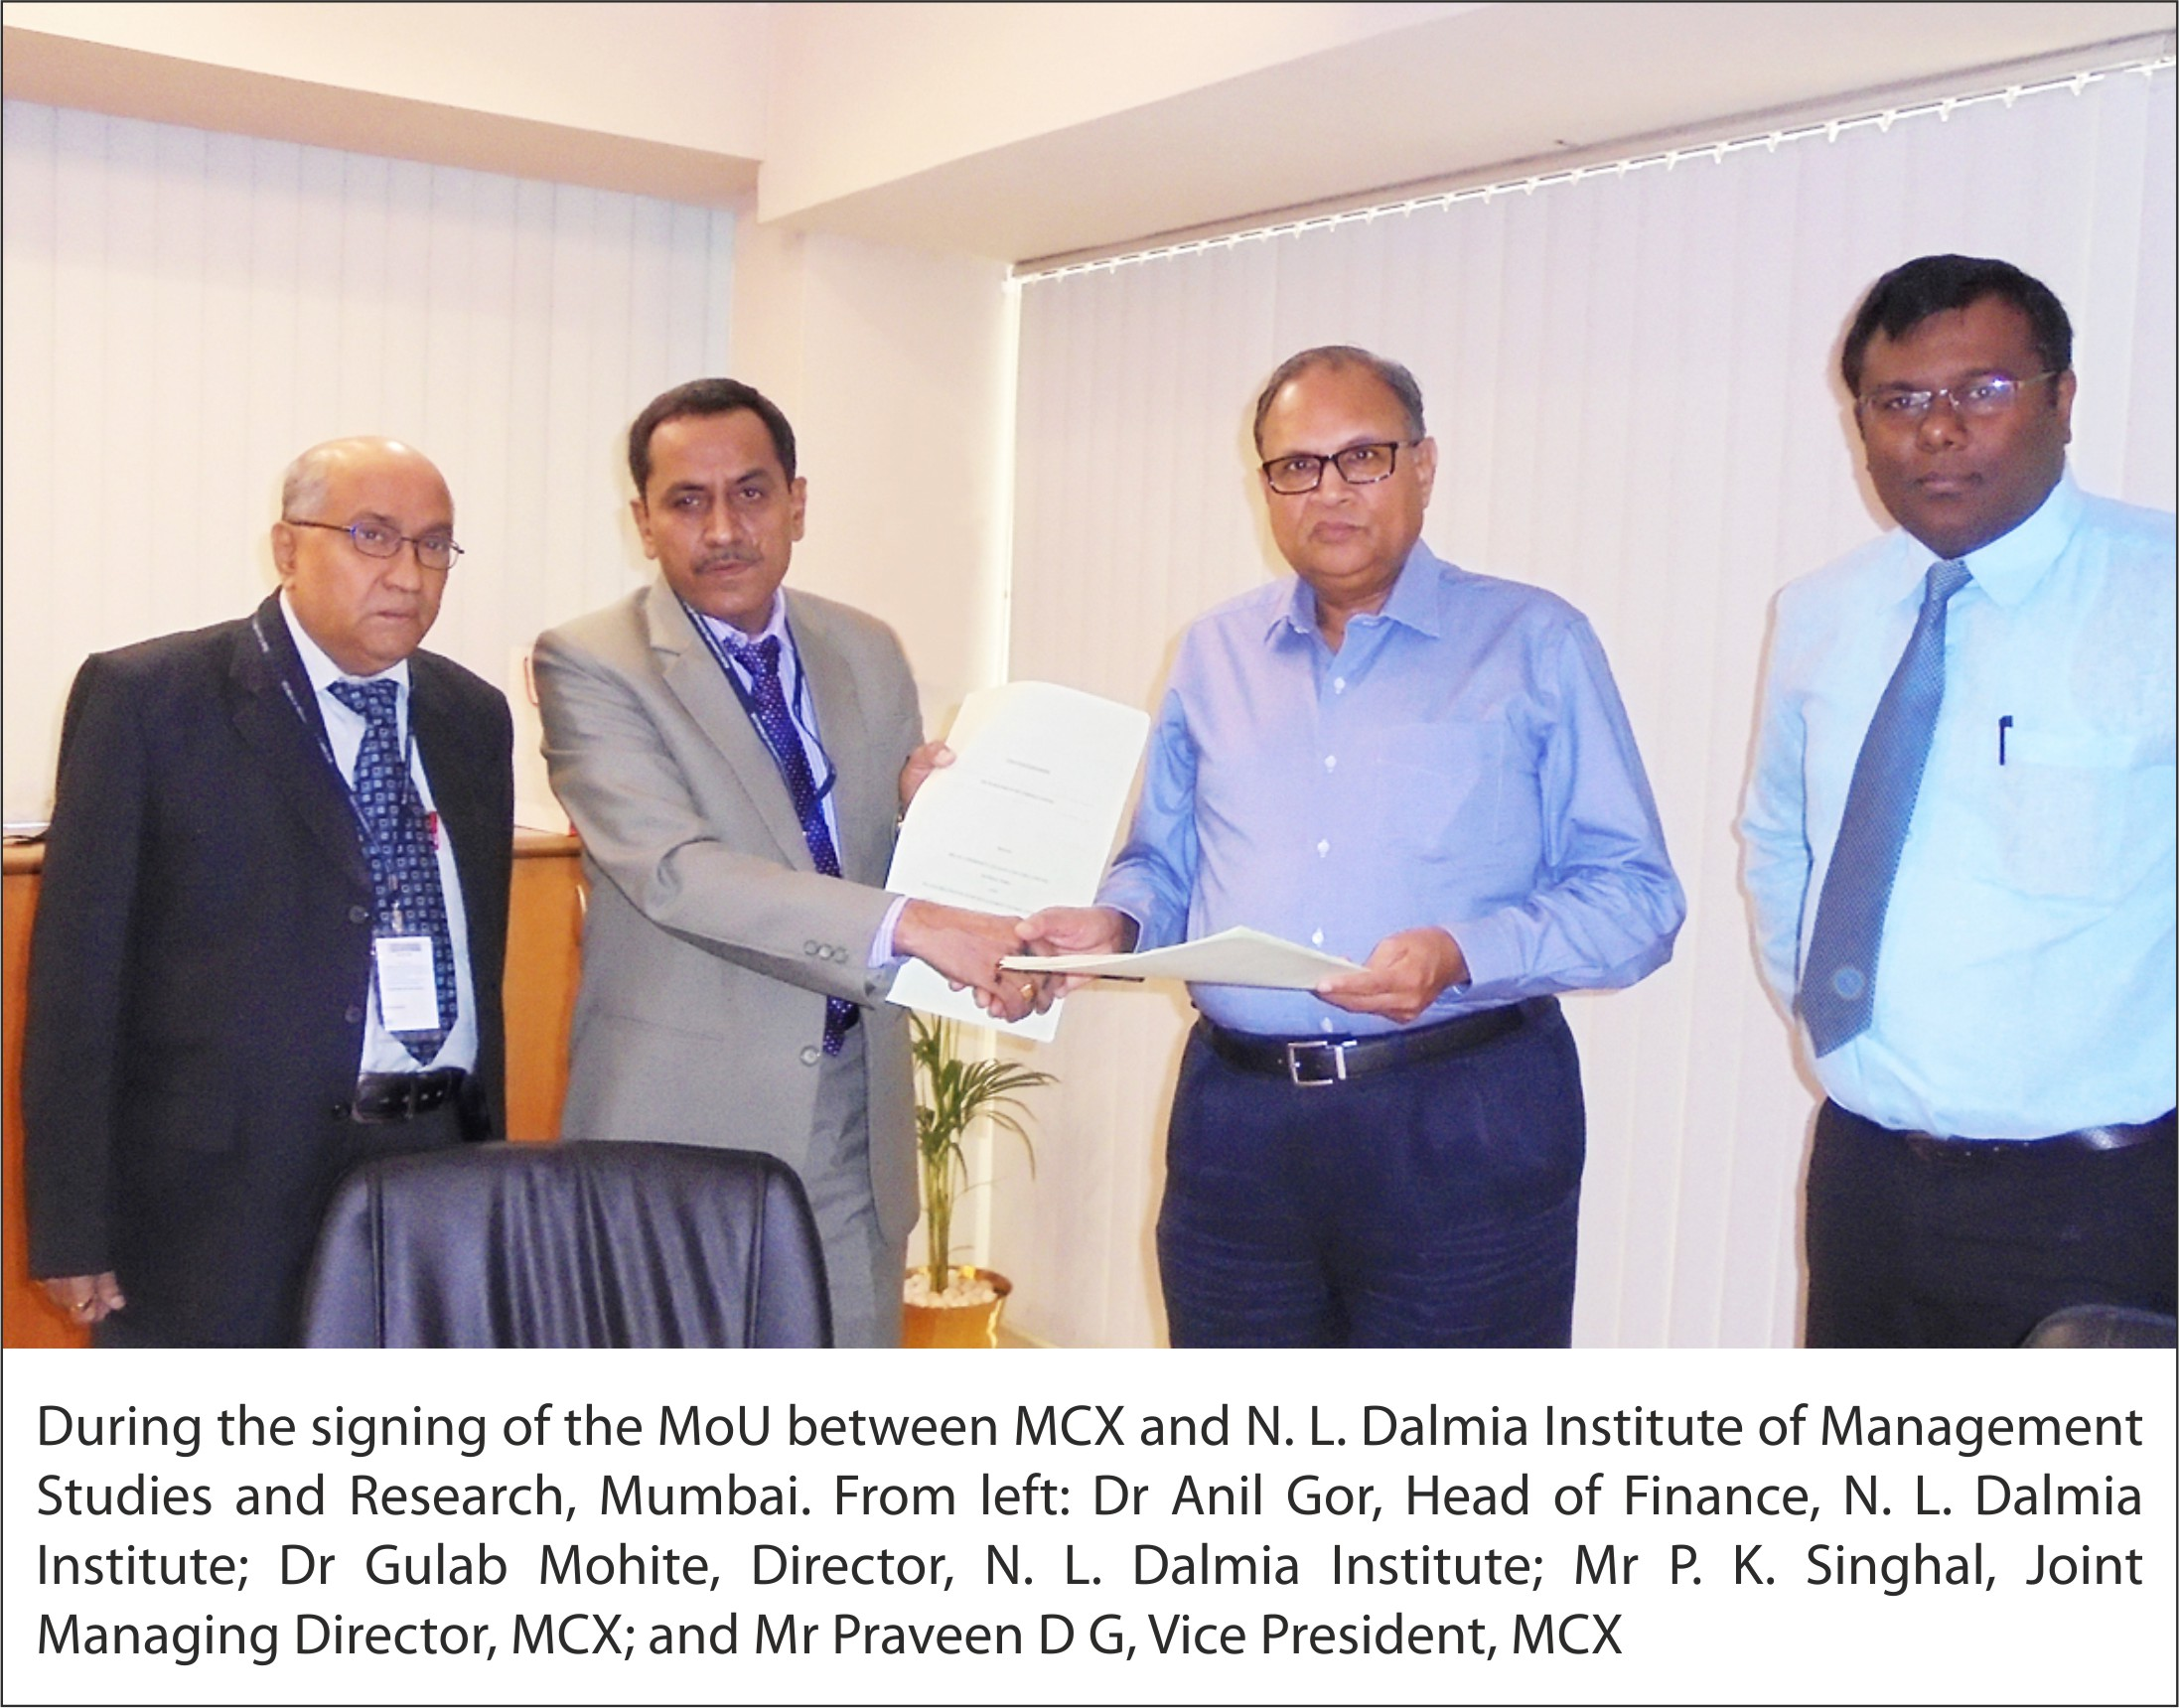 MCX signs MoU with N L Dalmia Institute of Management Studies & Research, Mumbai